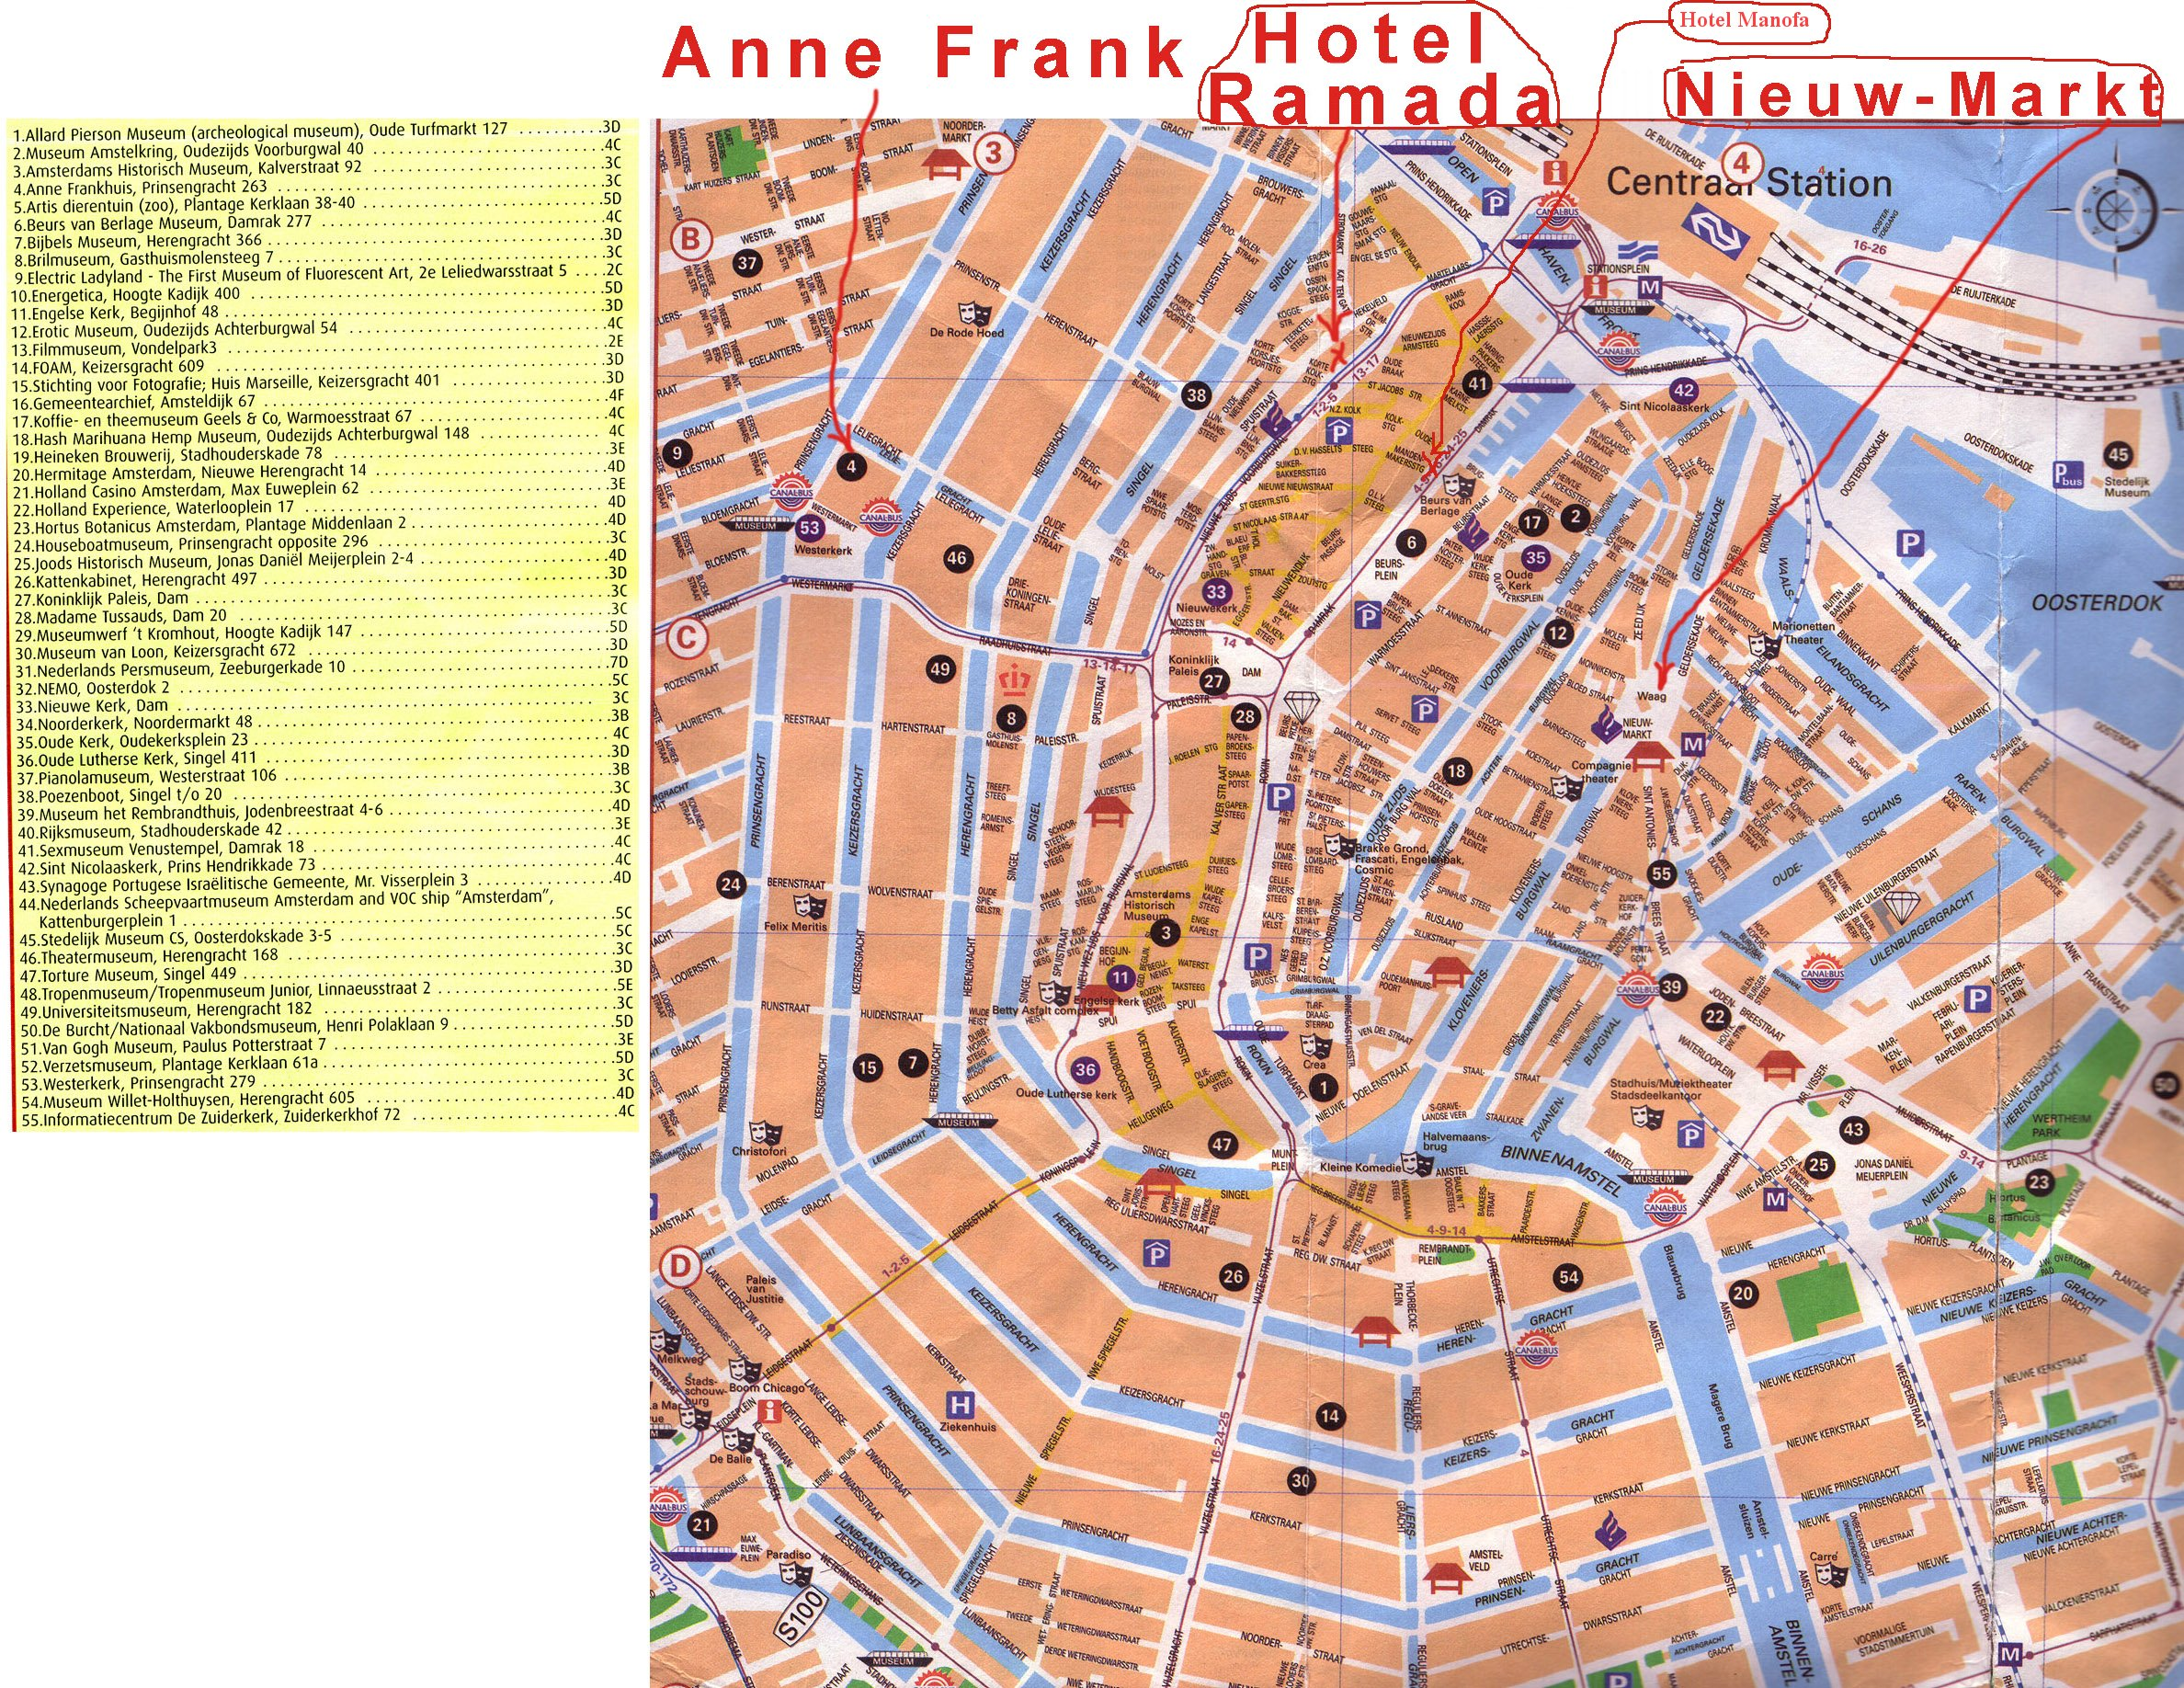 Amsterdam Tourist Map Amsterdam mappery – Amsterdam Tourist Map